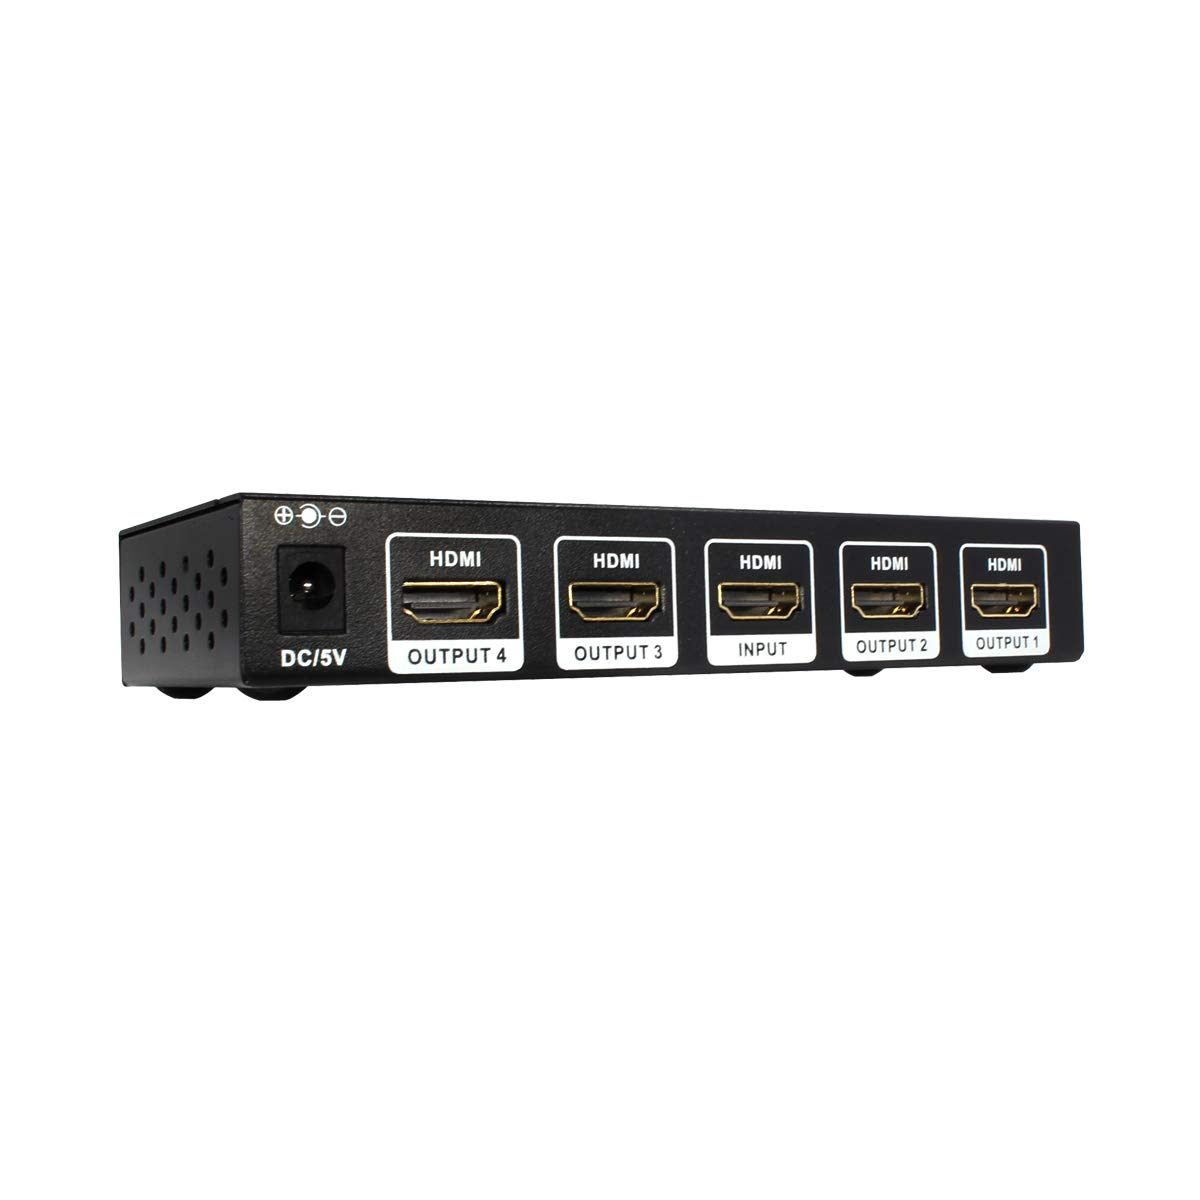 HDCP 2.2 1x4 HDMI Splitter 4K x 2K @60Hz Ultra HD HDR HDMI 2.0 18Gbps 1 in 4 Out